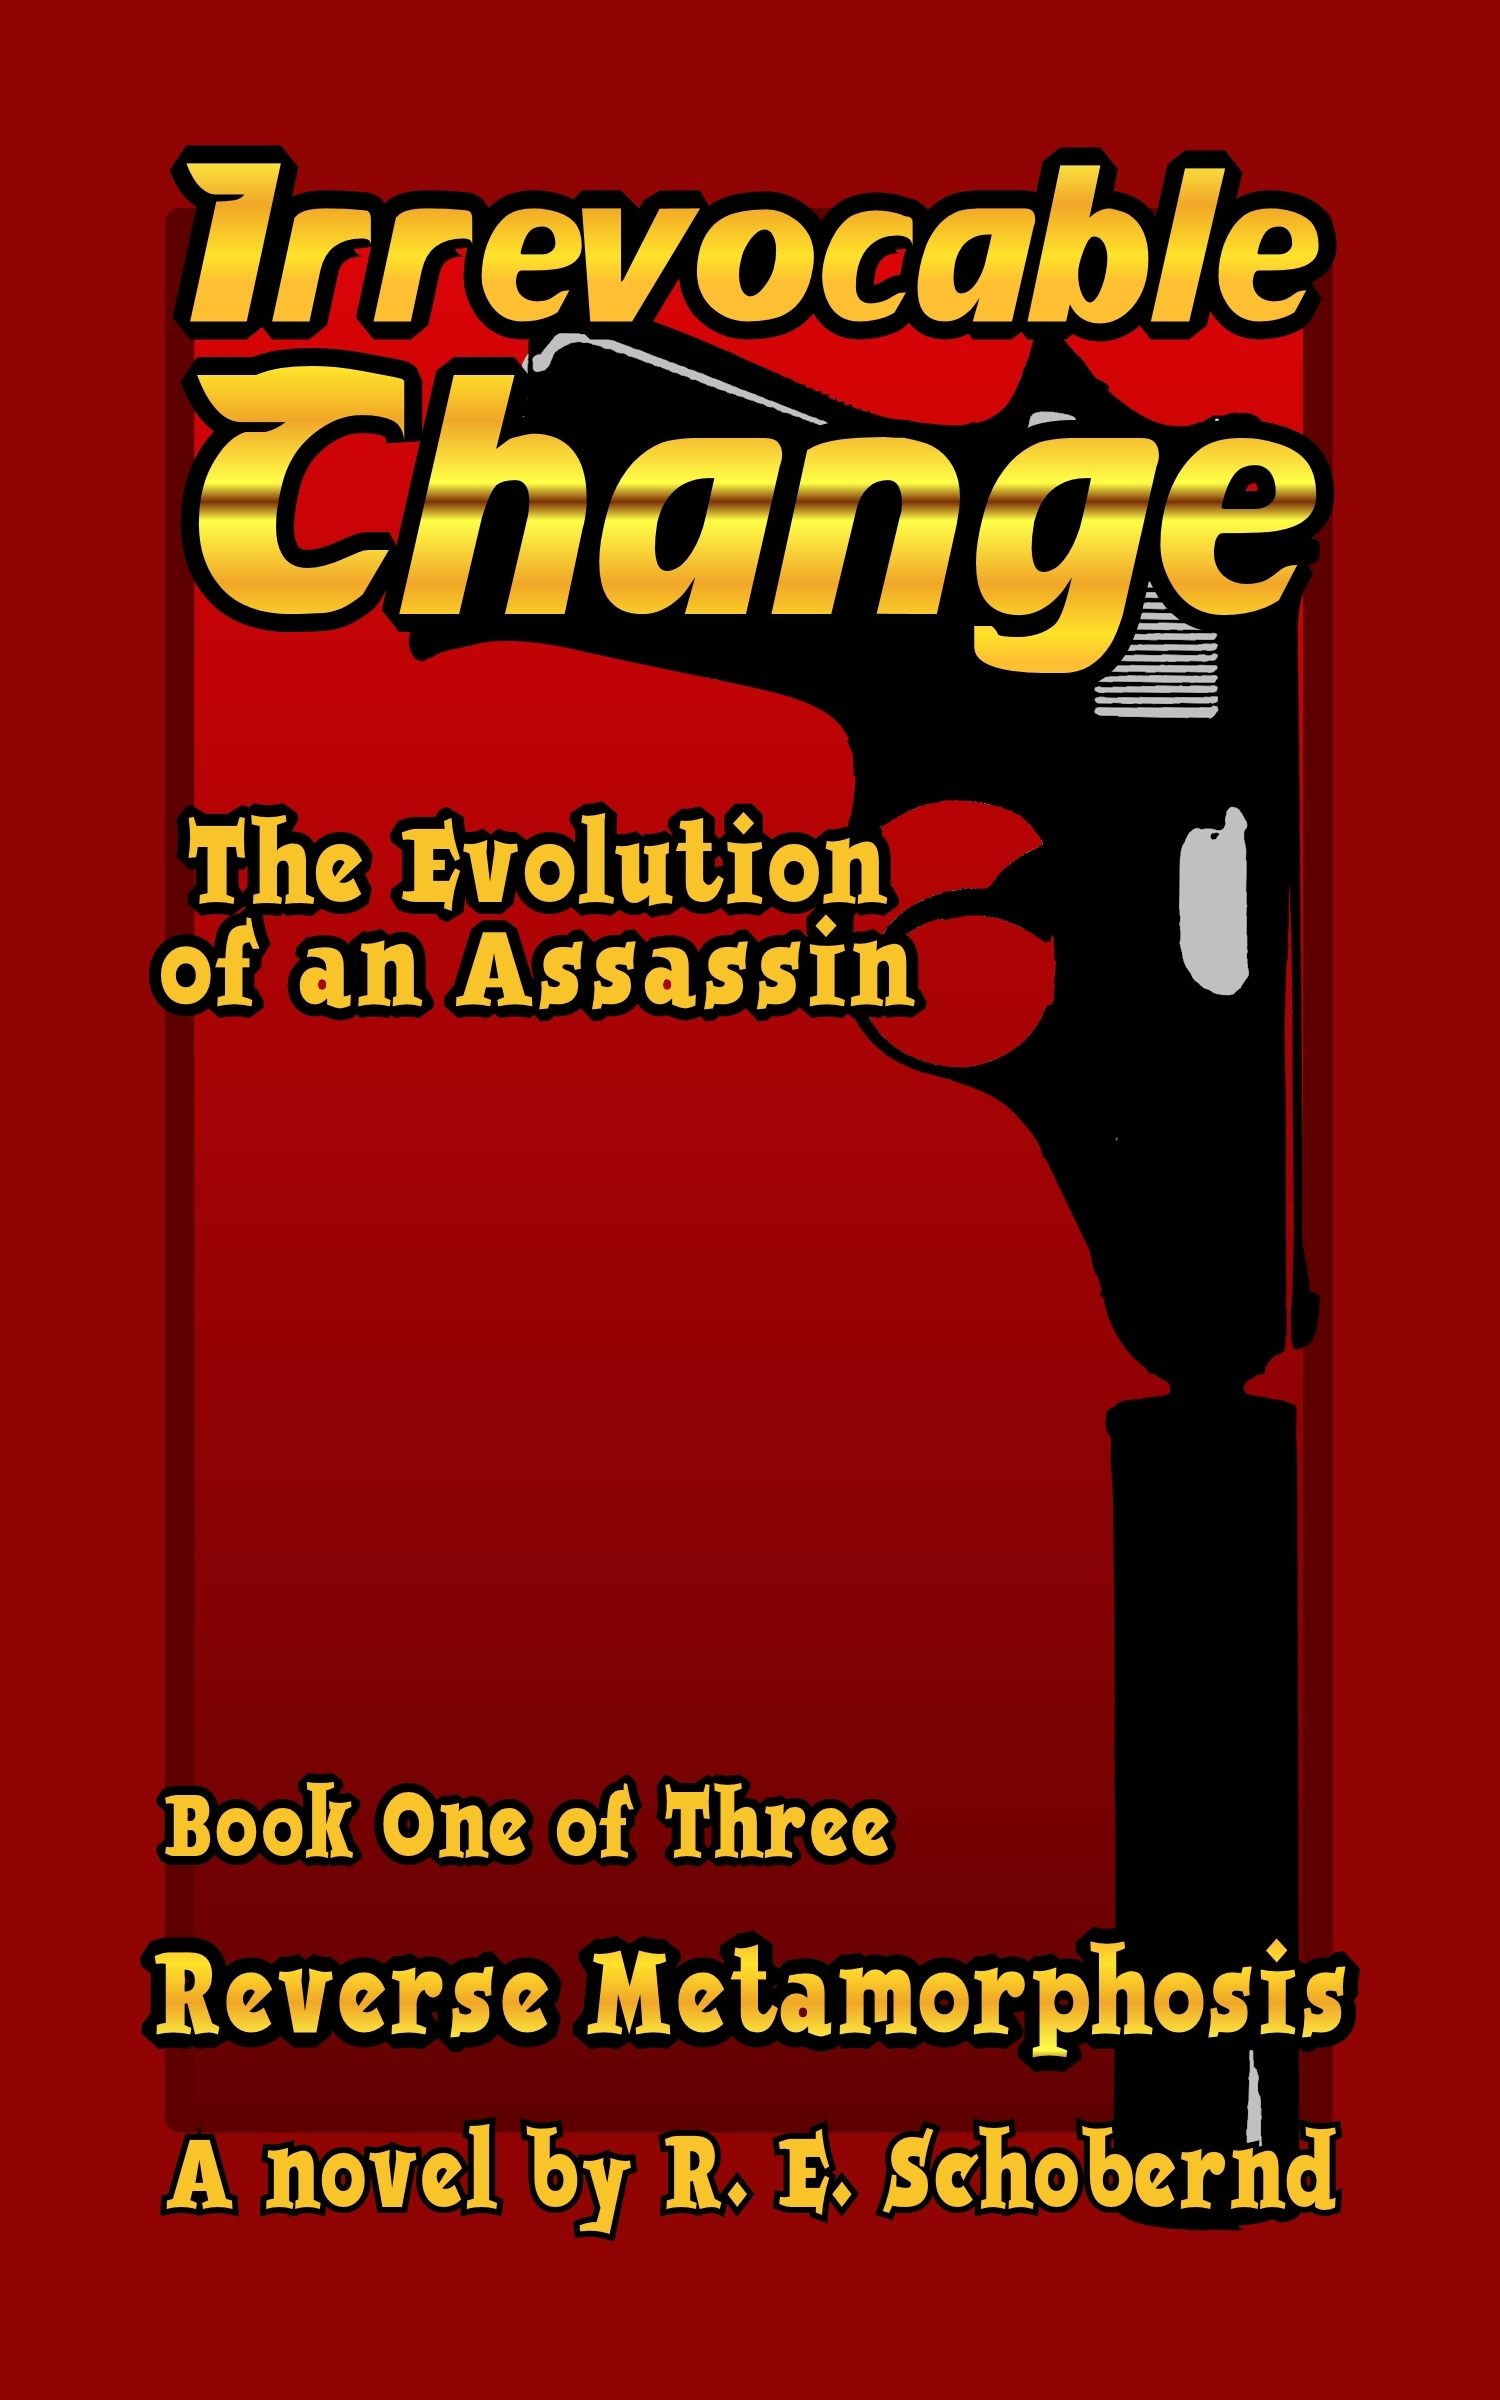 Reverse Metamorphosis book one of the Irrevocable Change trilogy